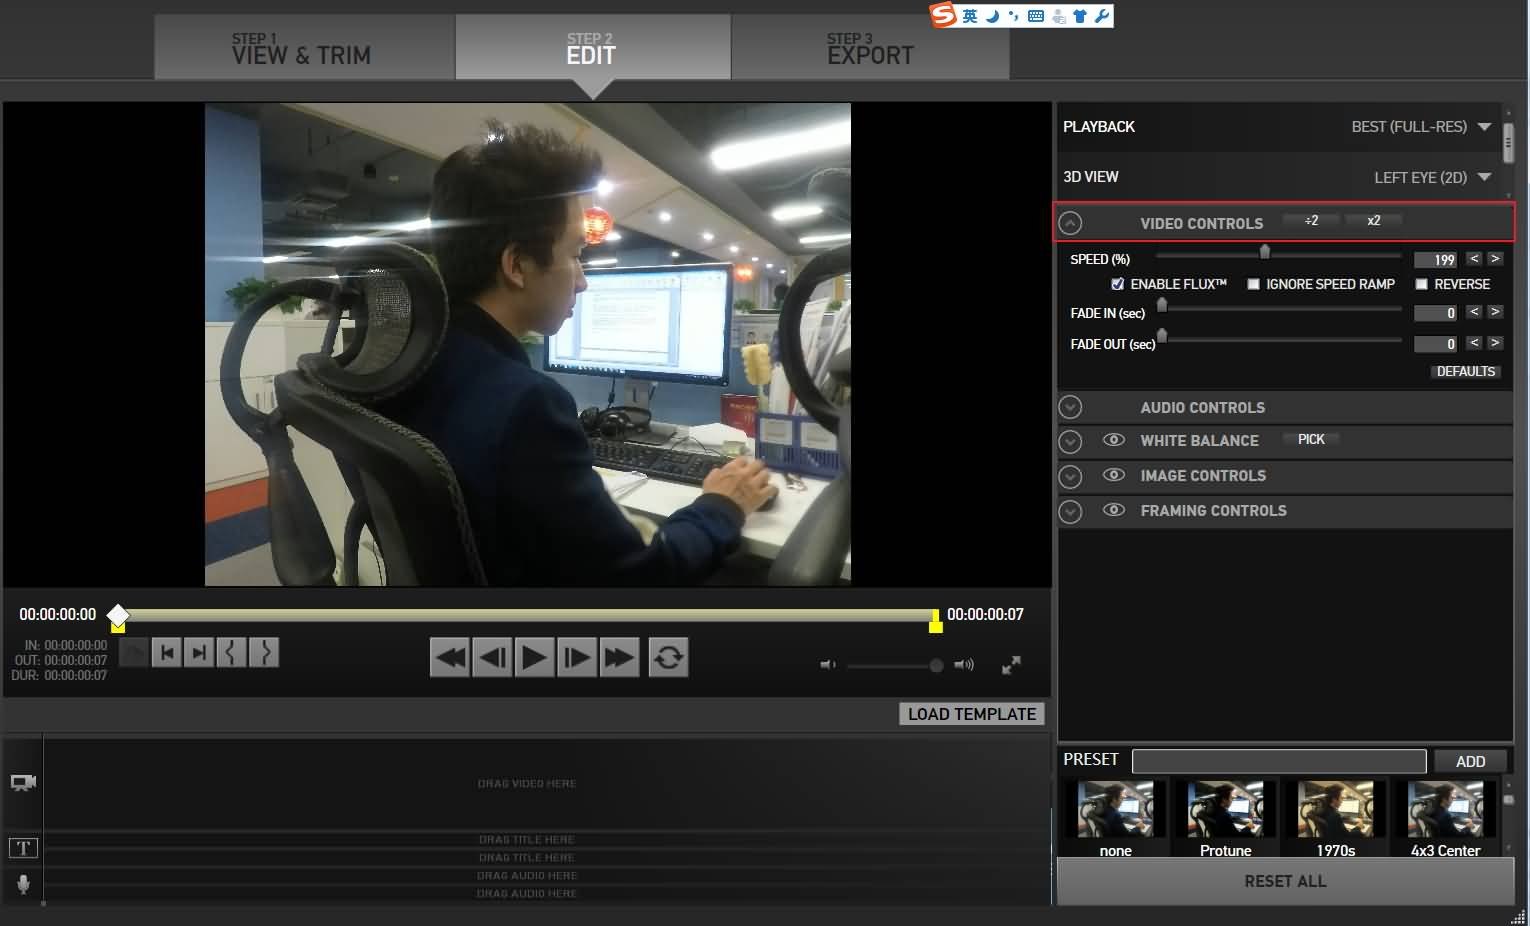 GoPro Studio Edit Interface